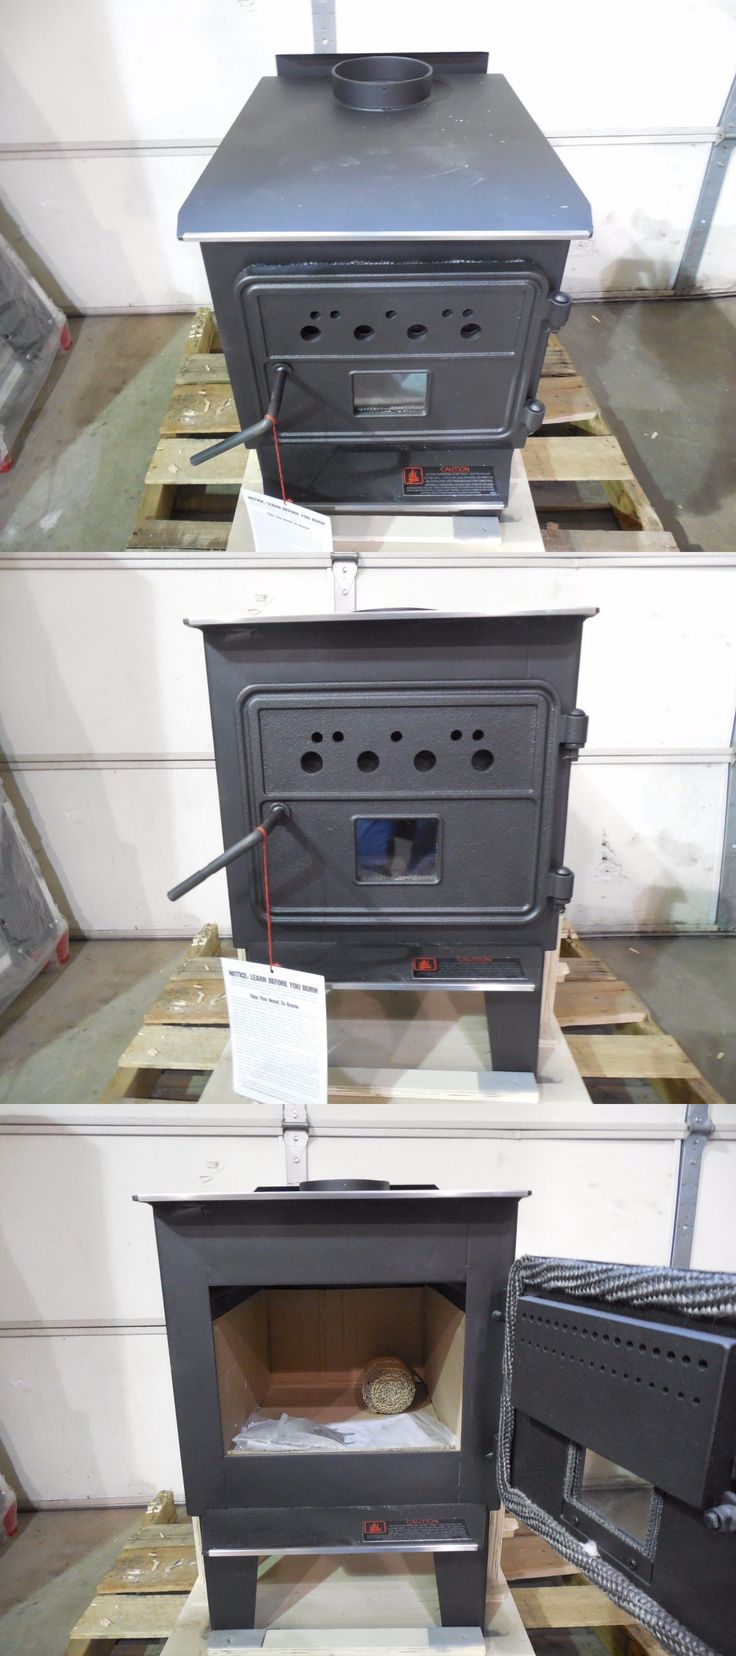 Heating Stoves 84184: Vogelzang 68,000 Btu High-Efficiency Cast Iron Wood Stove Heater W Blower -> BUY IT NOW ONLY: $399.99 on eBay!